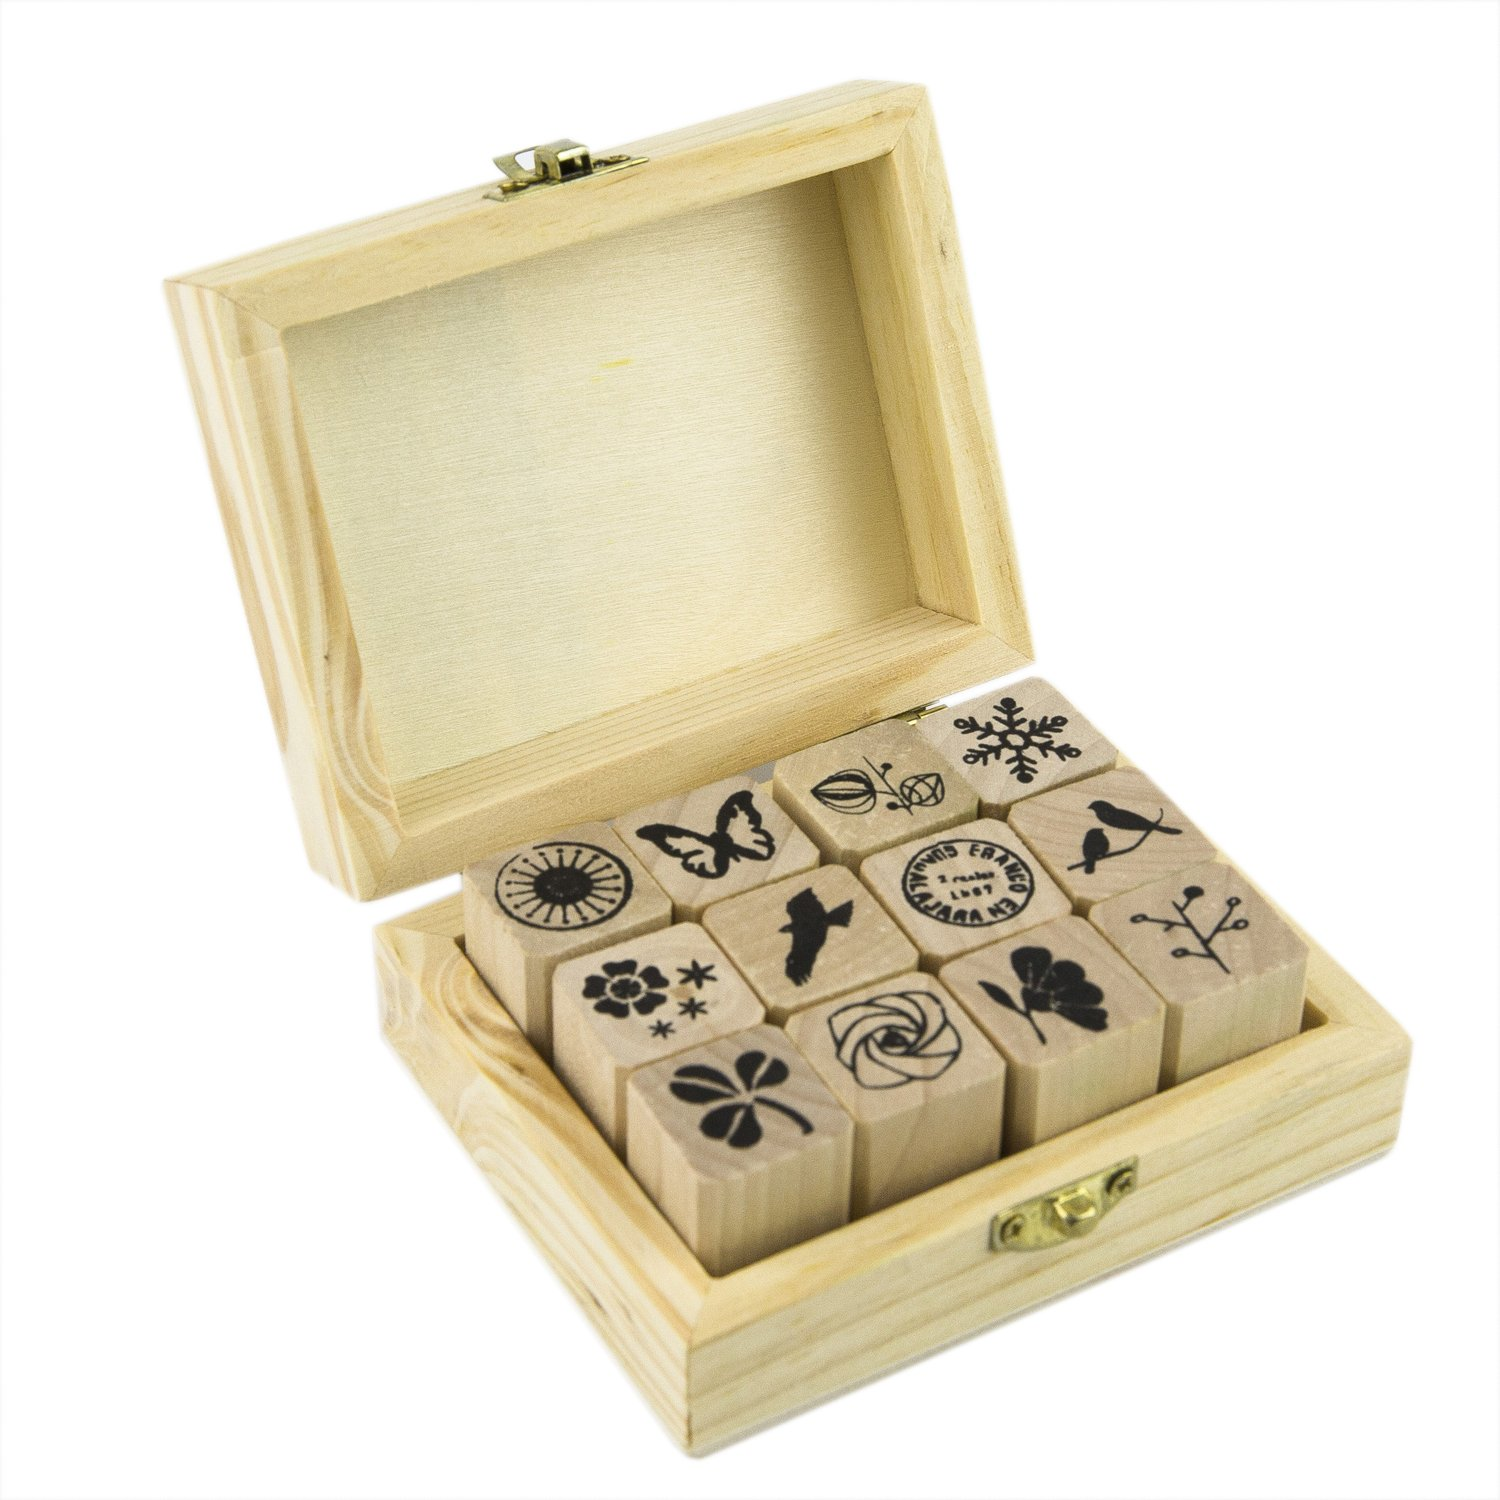 70 pcs Alphabet Number Wood Rubber Stamp, Capital Lower Case Letter Stamp with Vintage Box LoveBoutique